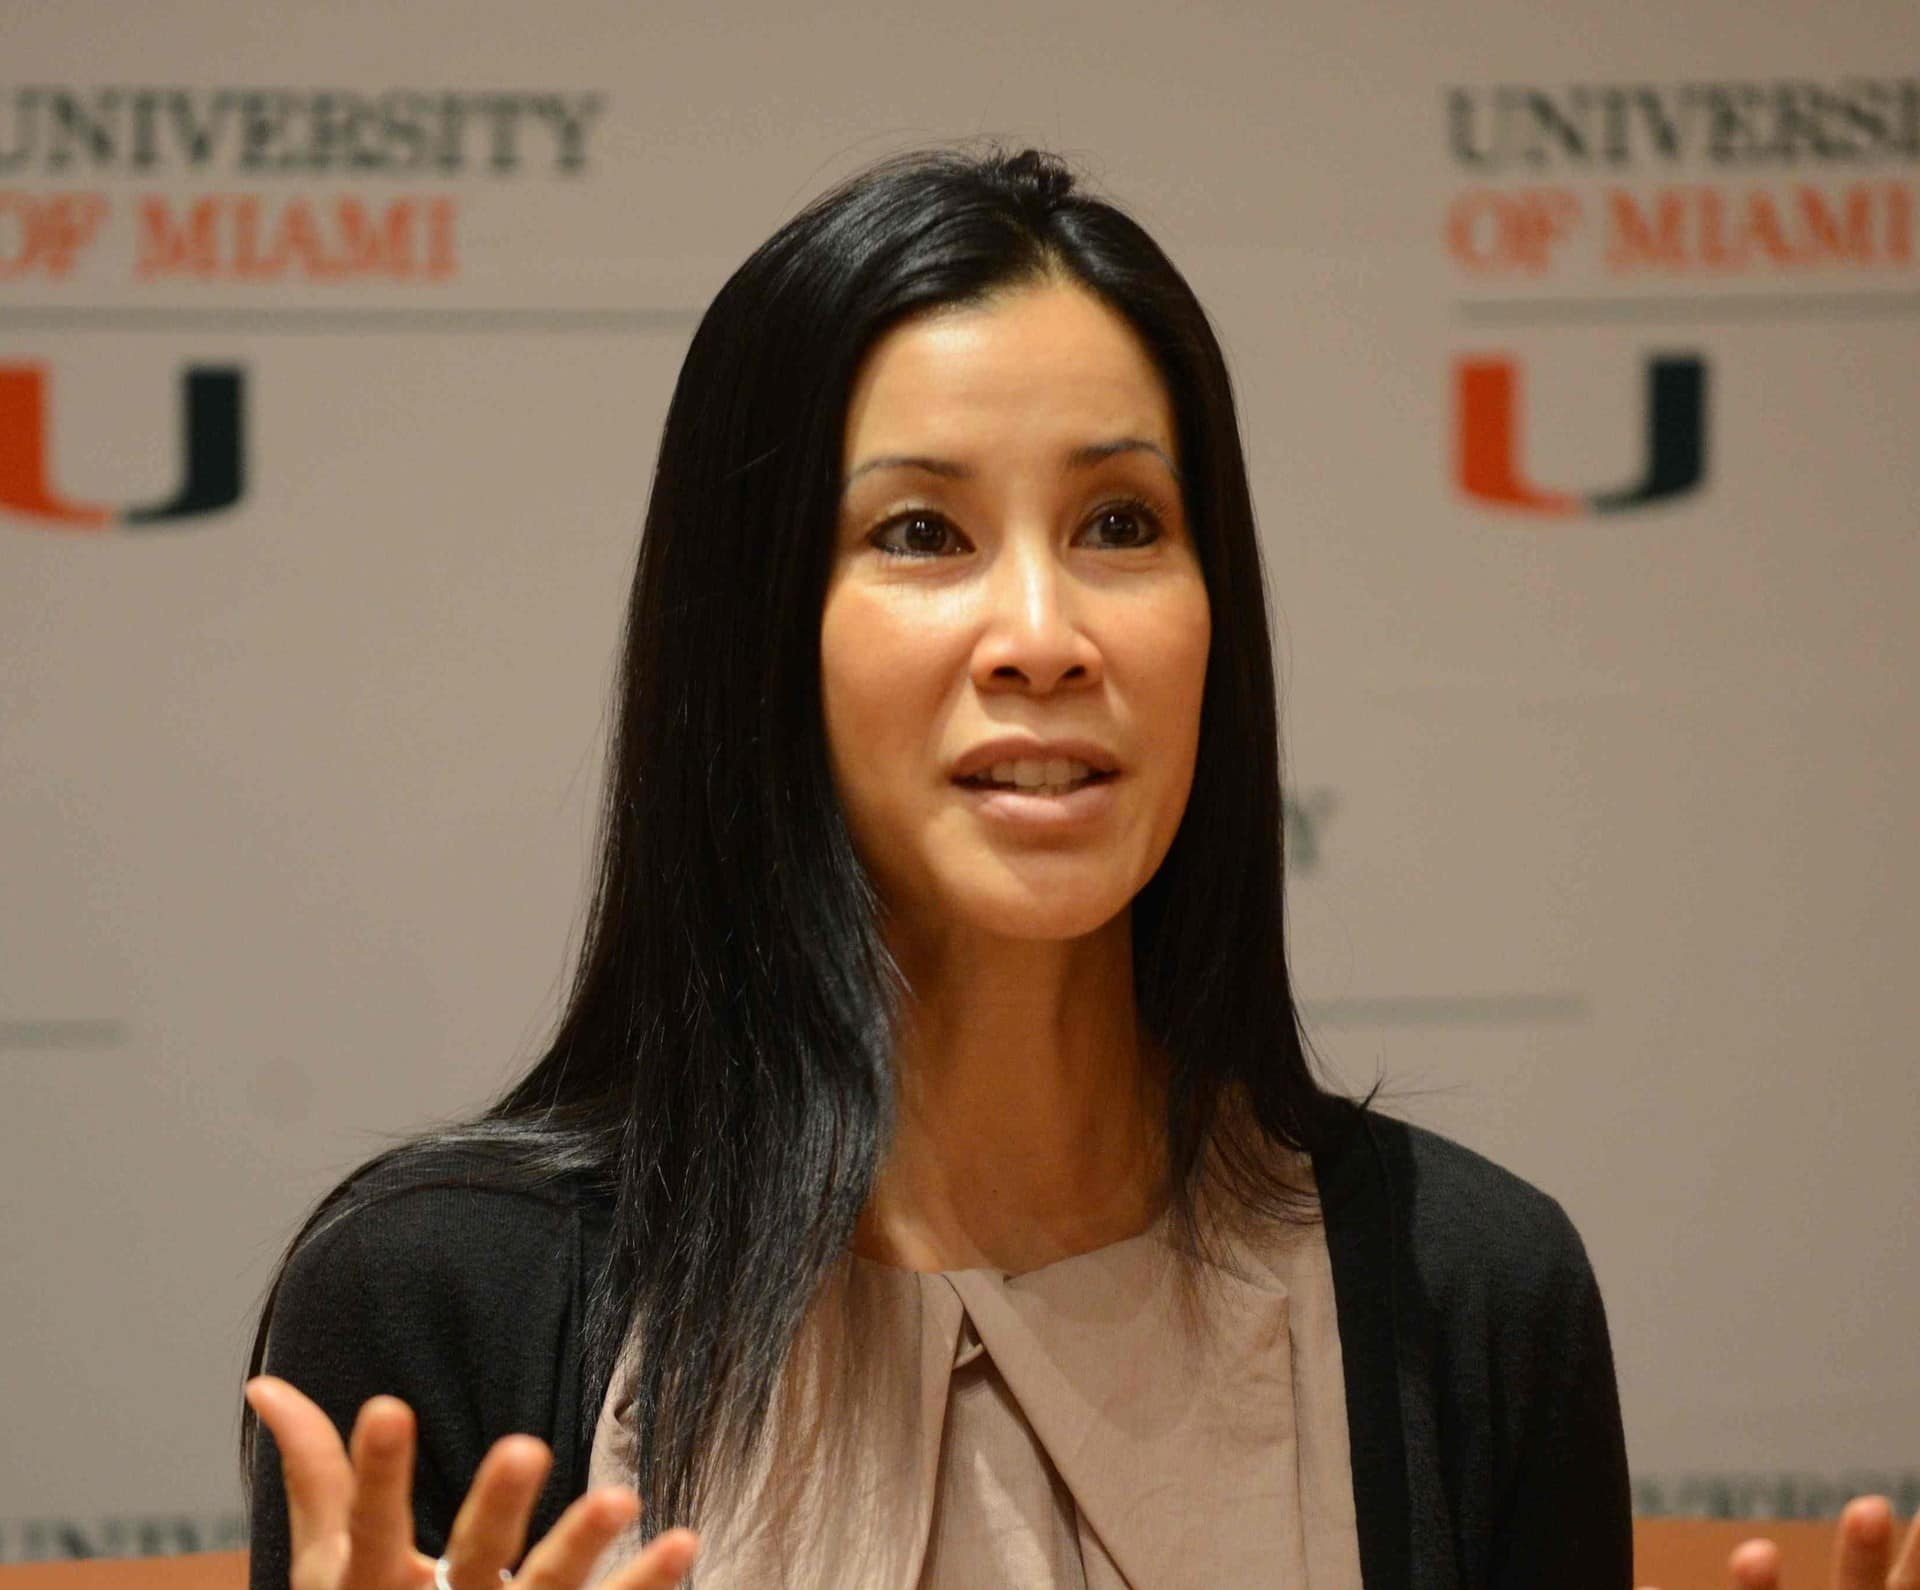 lisa ling plastic surgery photo - 1